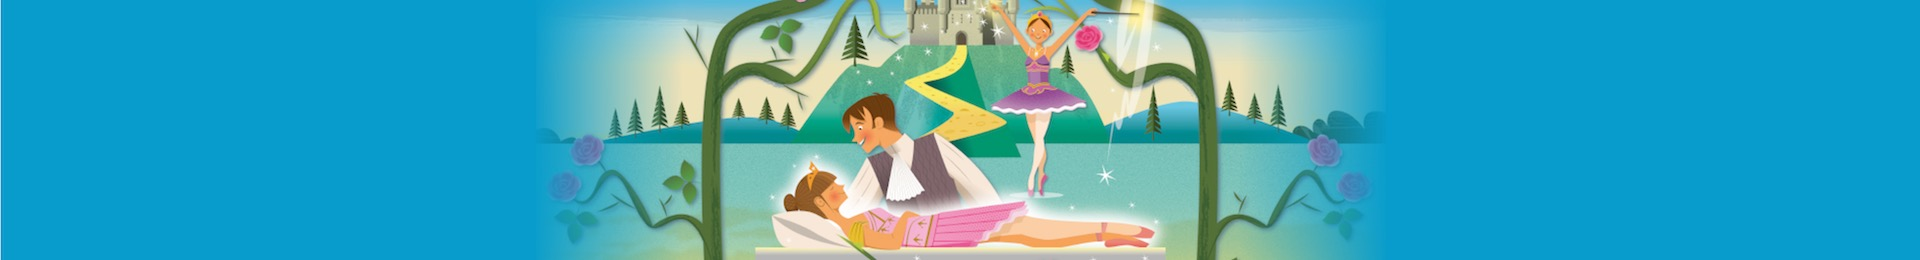 English National Ballet: My First Ballet: Sleeping Beauty banner image